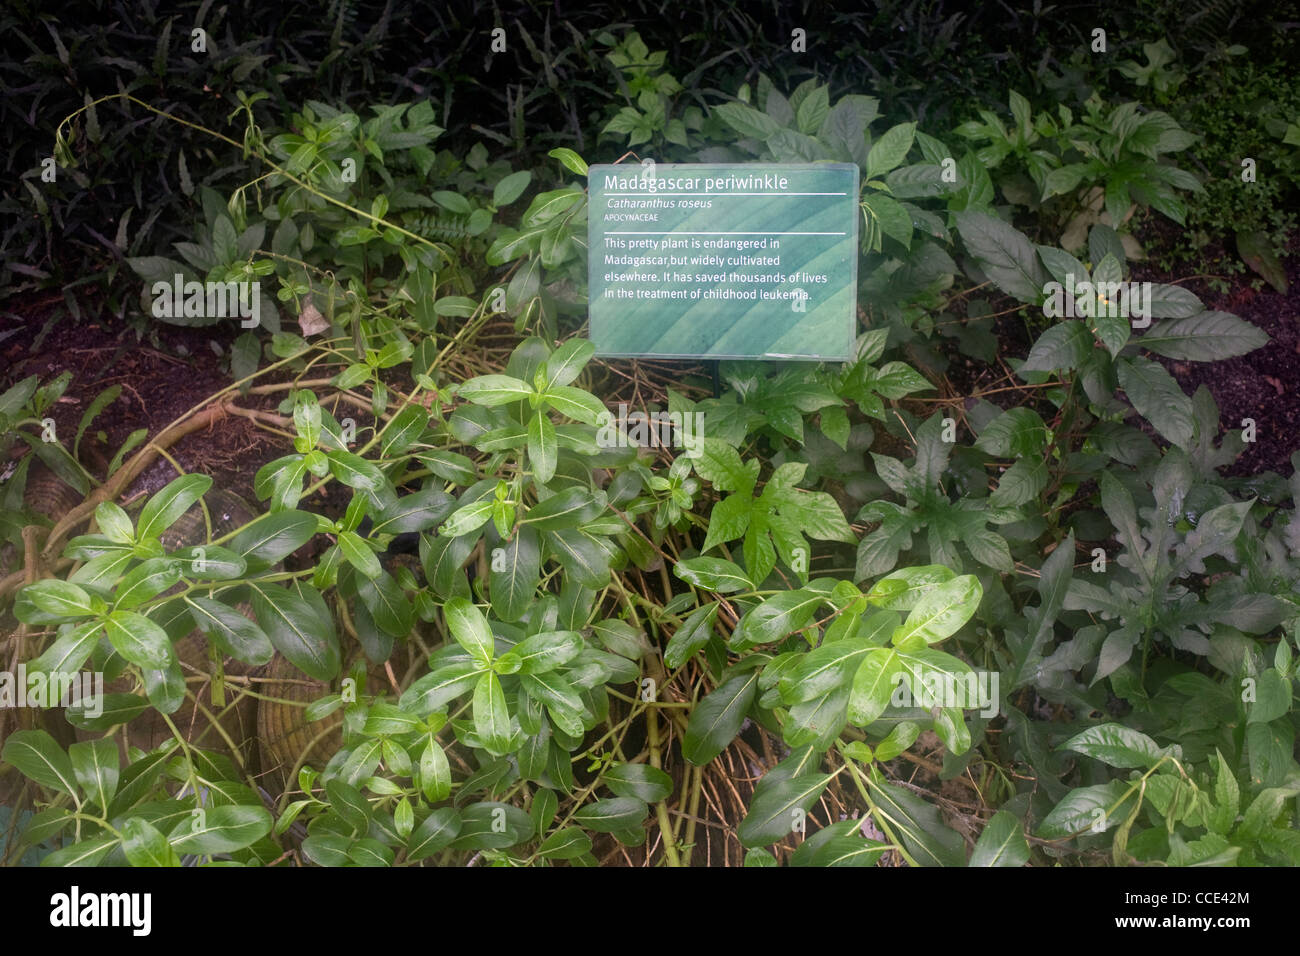 Inside the Eden project's rainforest biome you can find the Madagascar periwinkle, used for treating leukemia - Stock Image